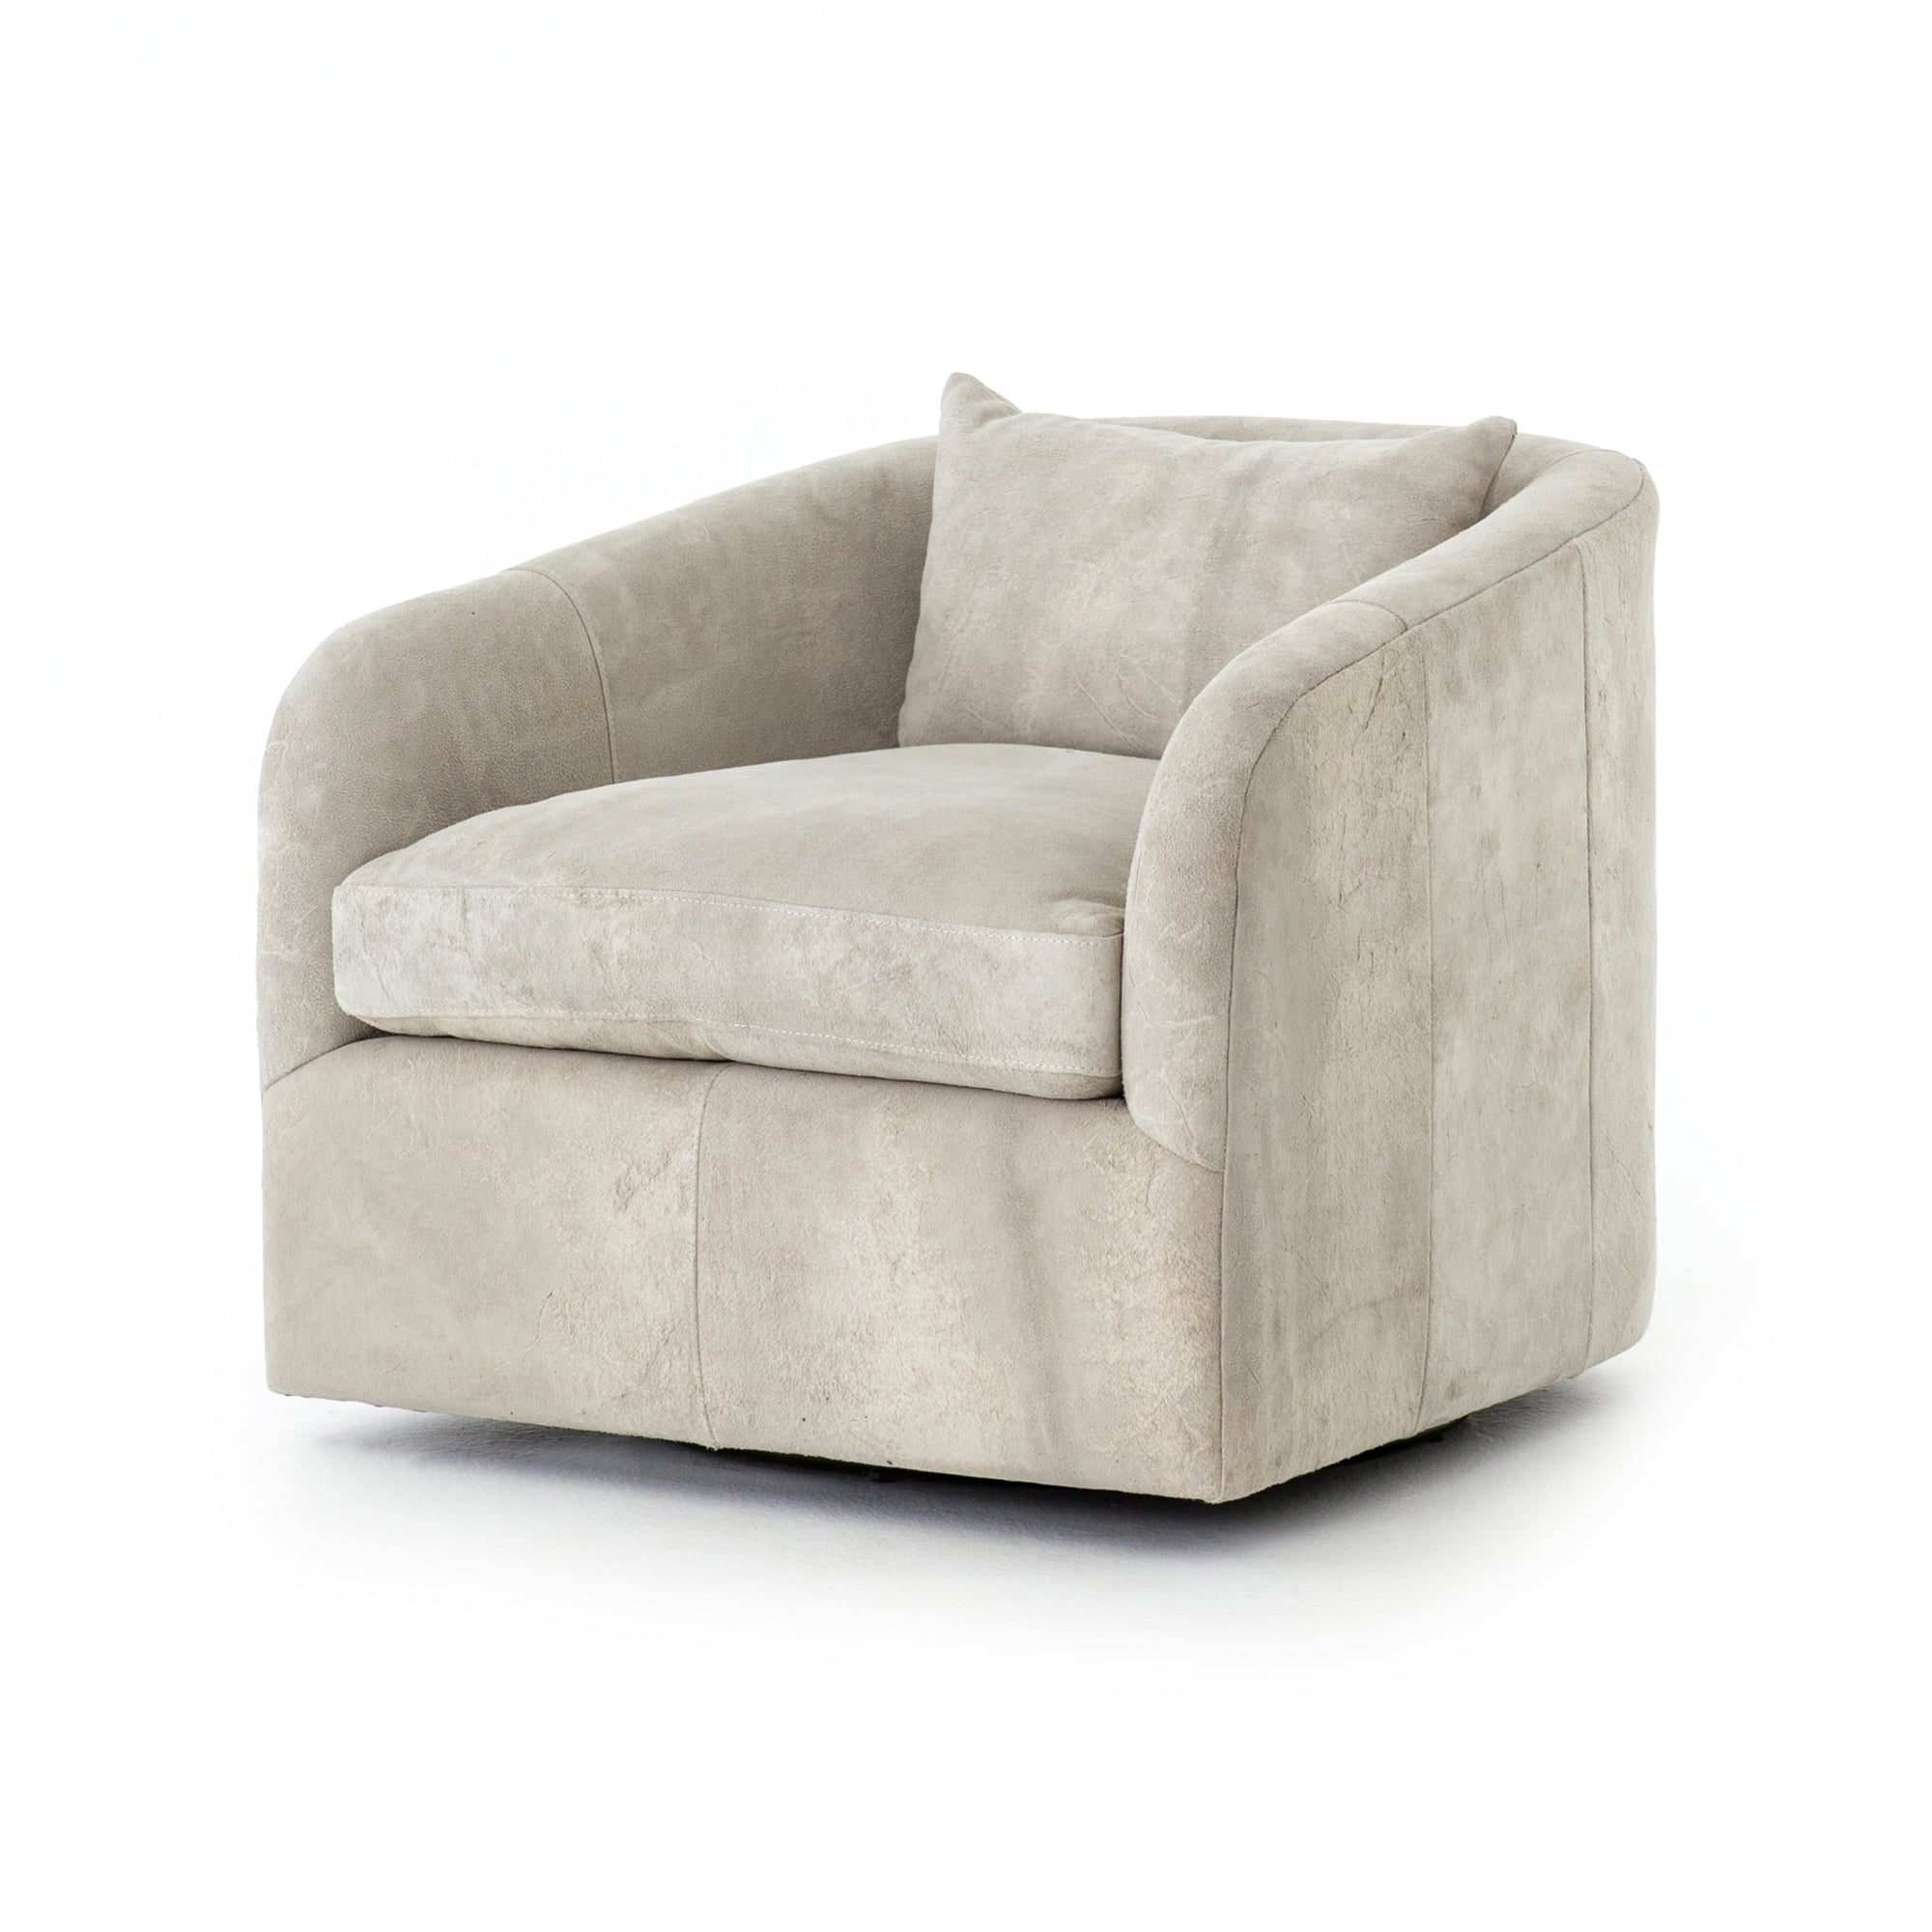 Topanga Swivel Chair - Whistler Oyster